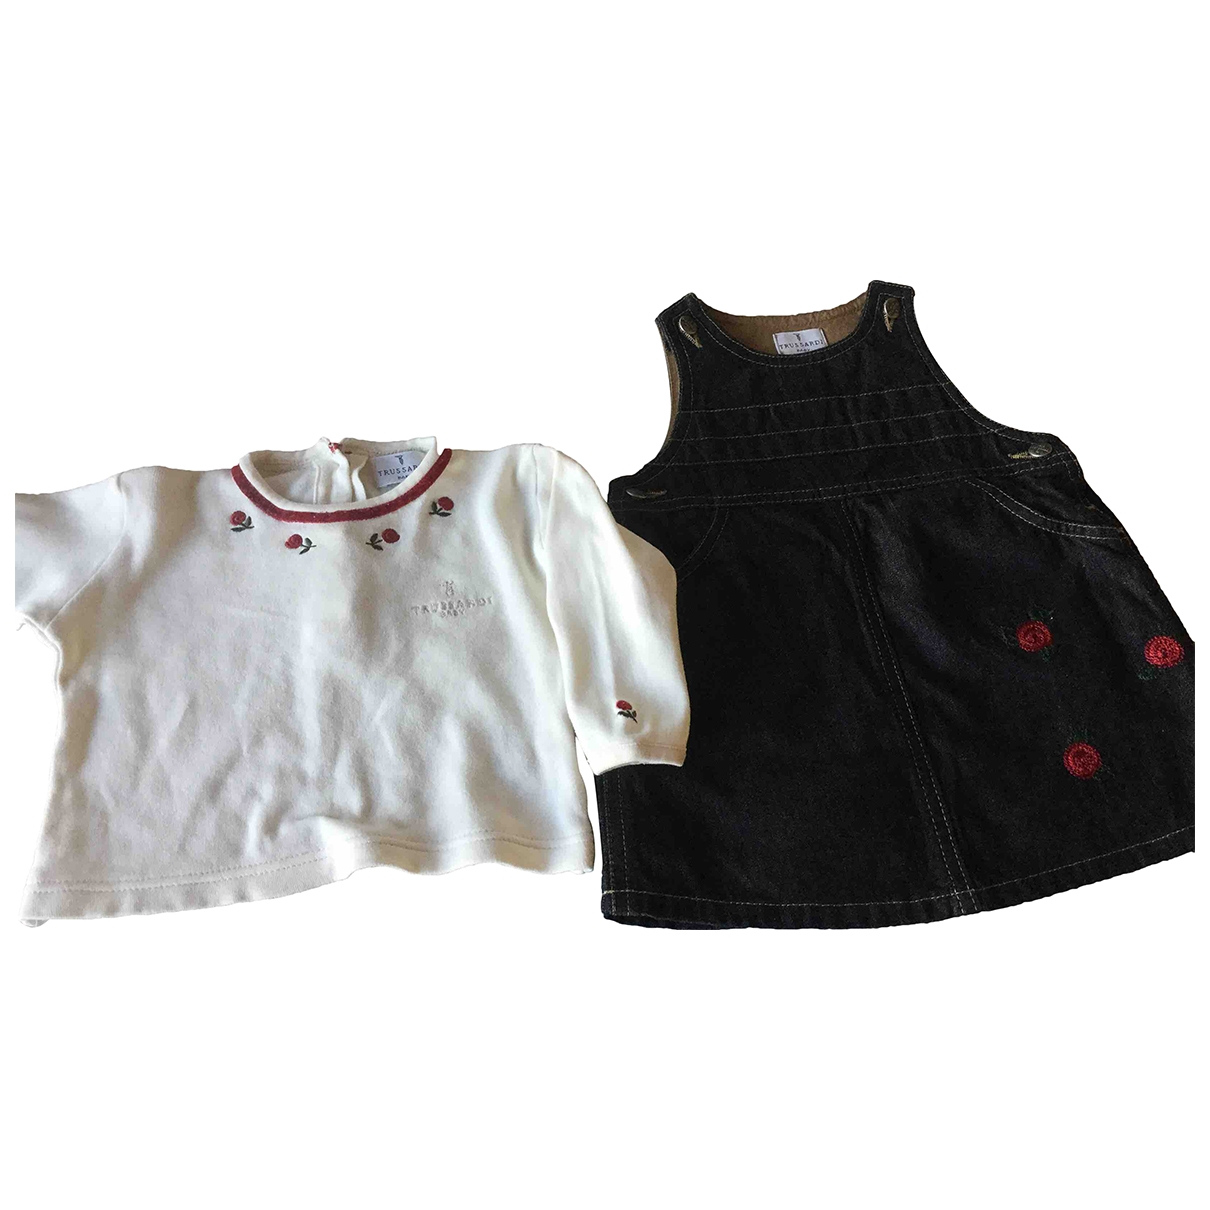 Trussardi \N Multicolour Cotton Outfits for Kids 6 months - up to 67cm FR